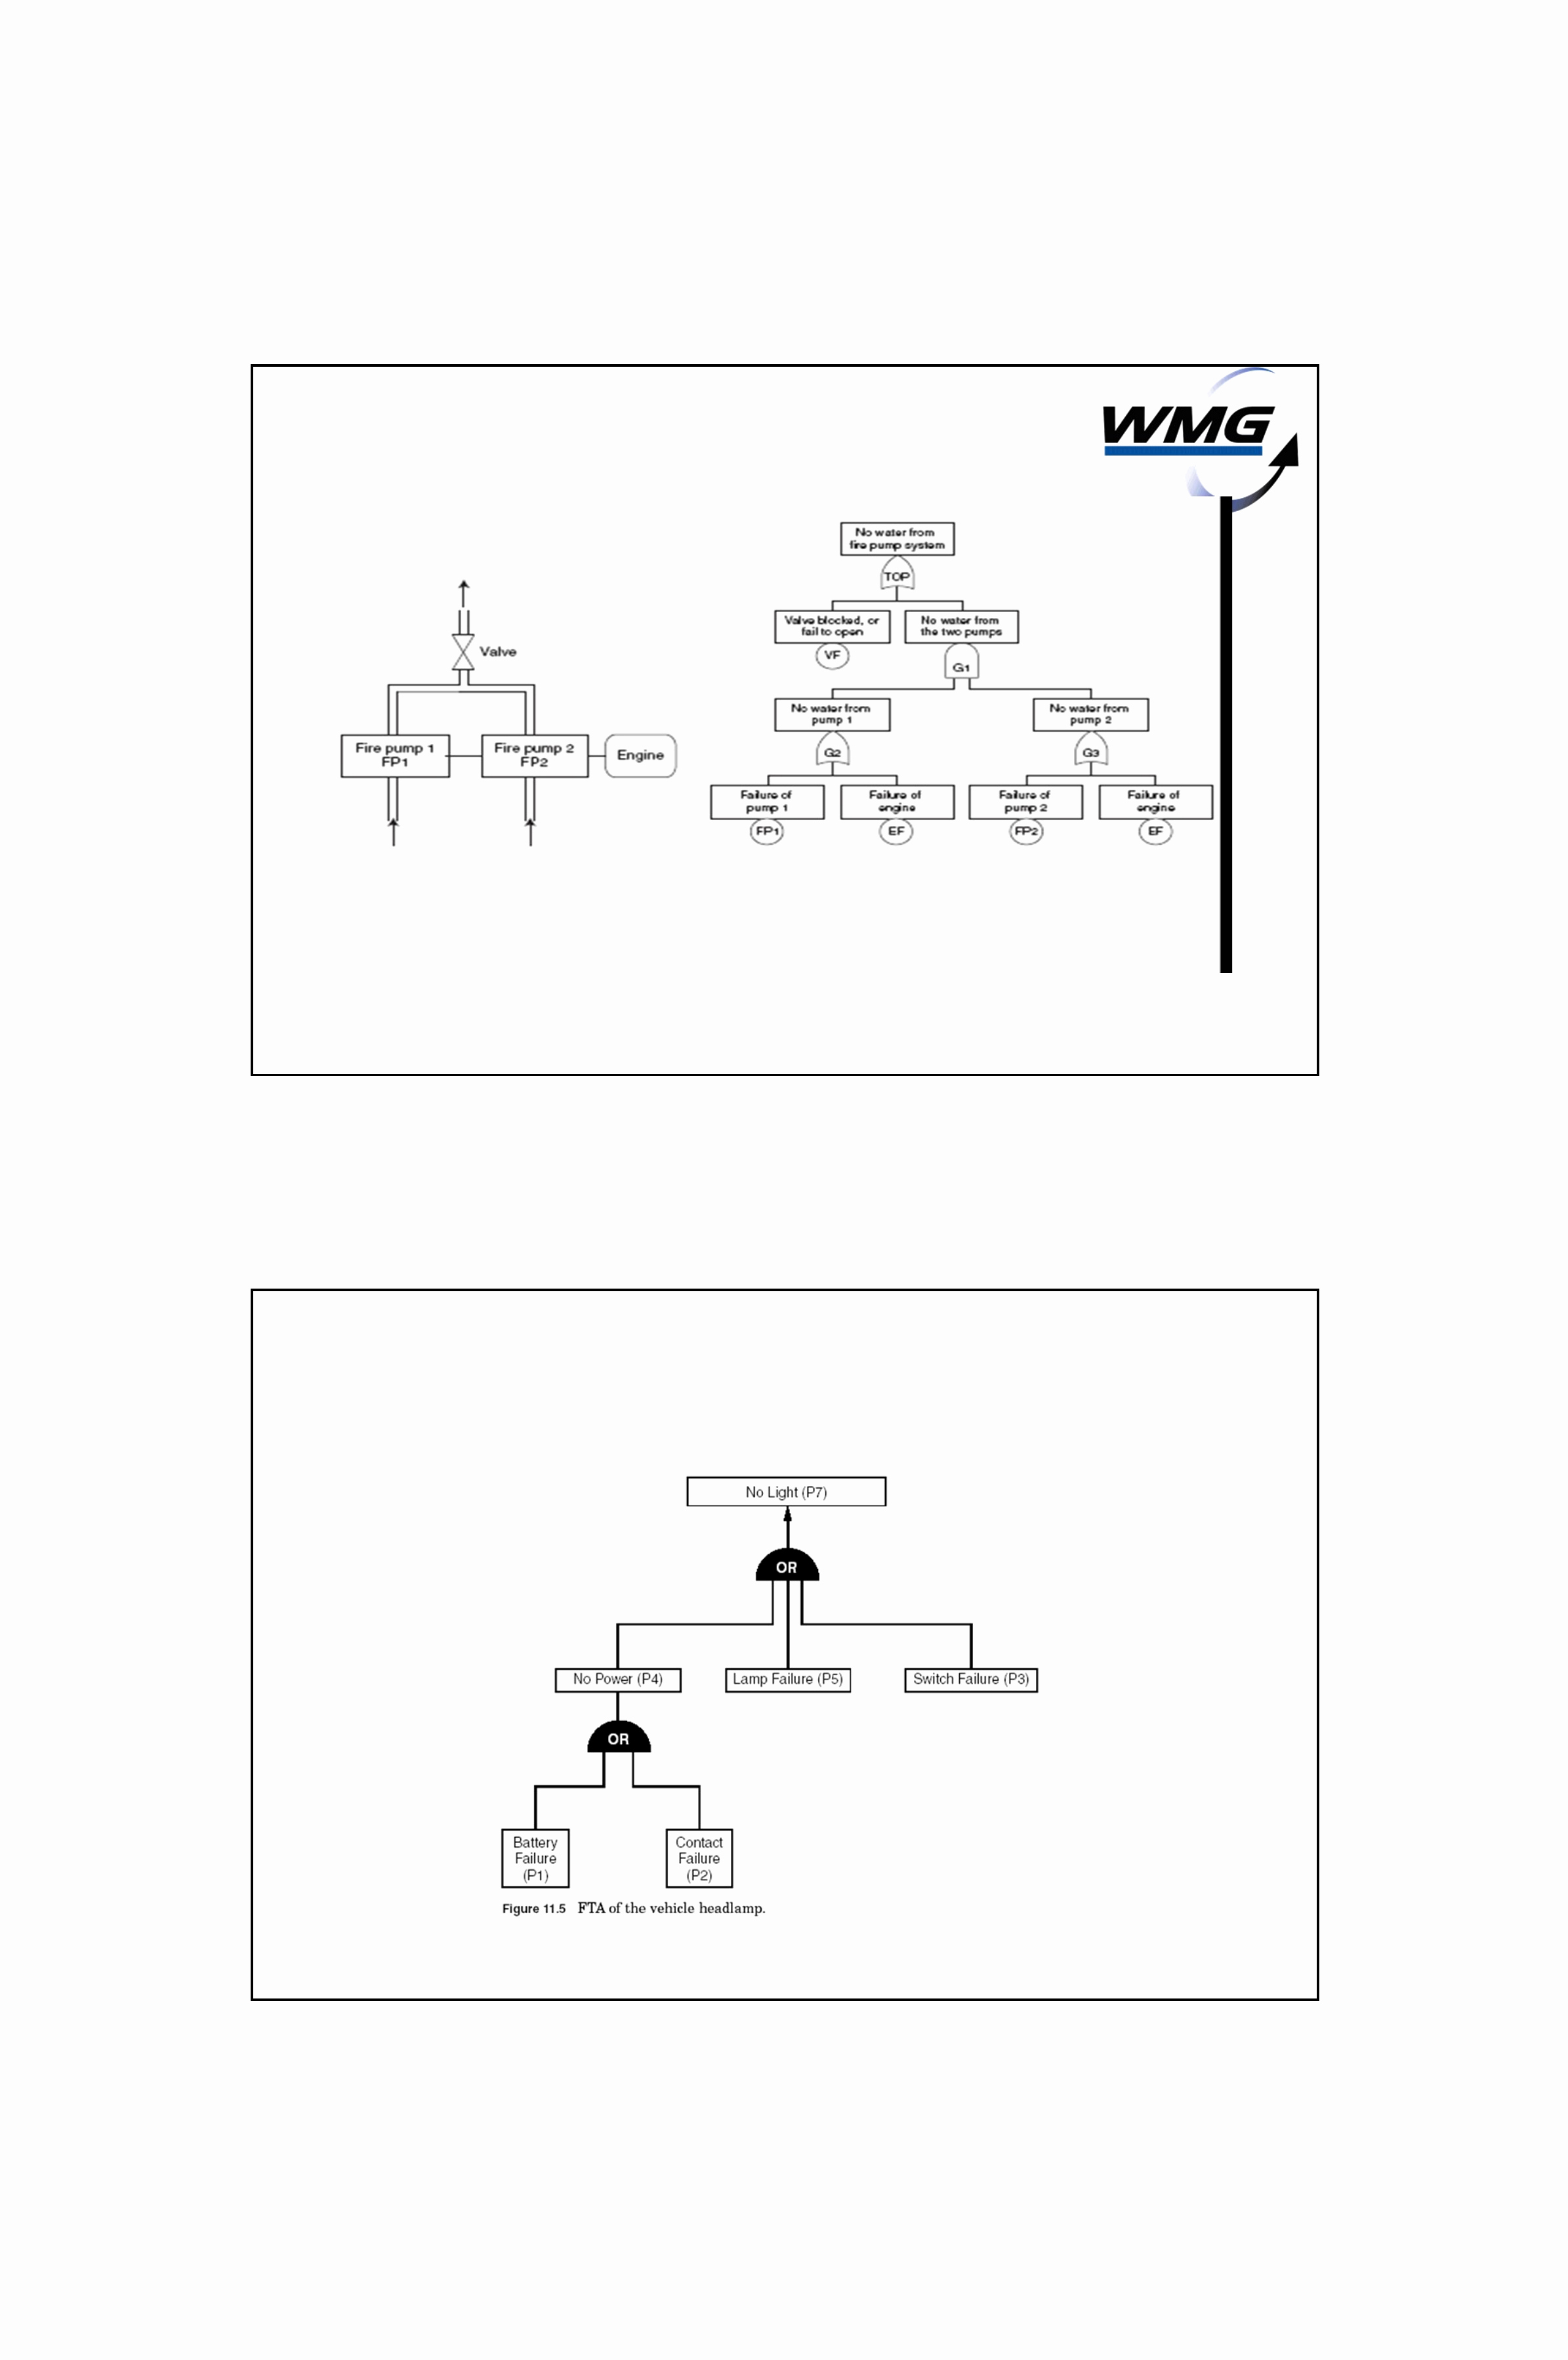 Fault Tree Analysis Template Best Of An Introduction to Fault Tree Analysis Fta Free Download